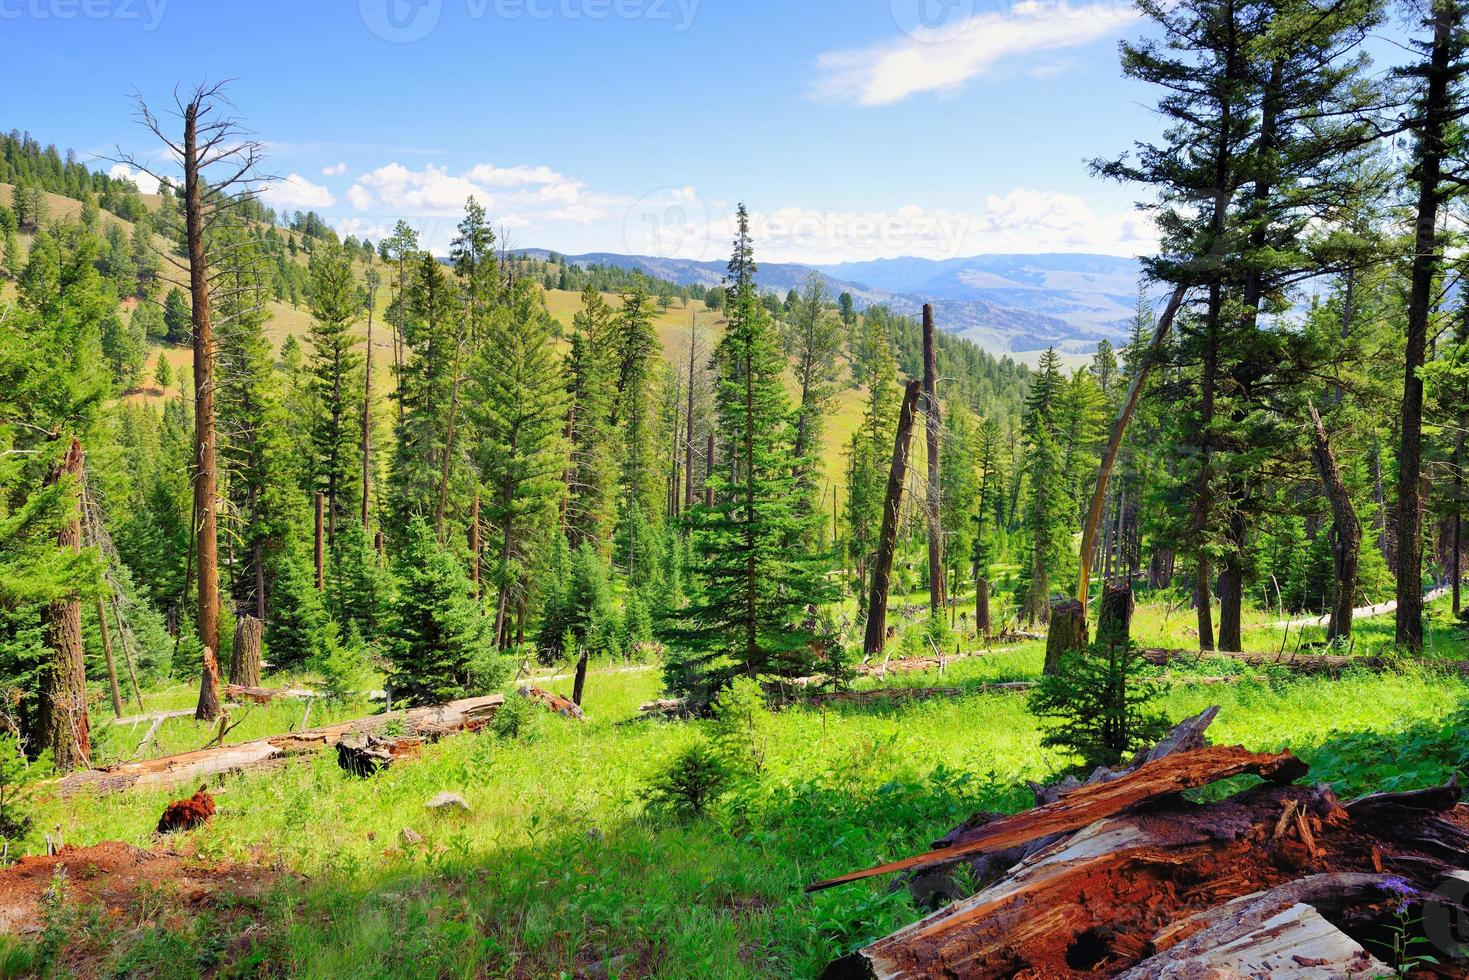 Blacktail Plateau in Yellowstone National Park, Wyoming in summer photo